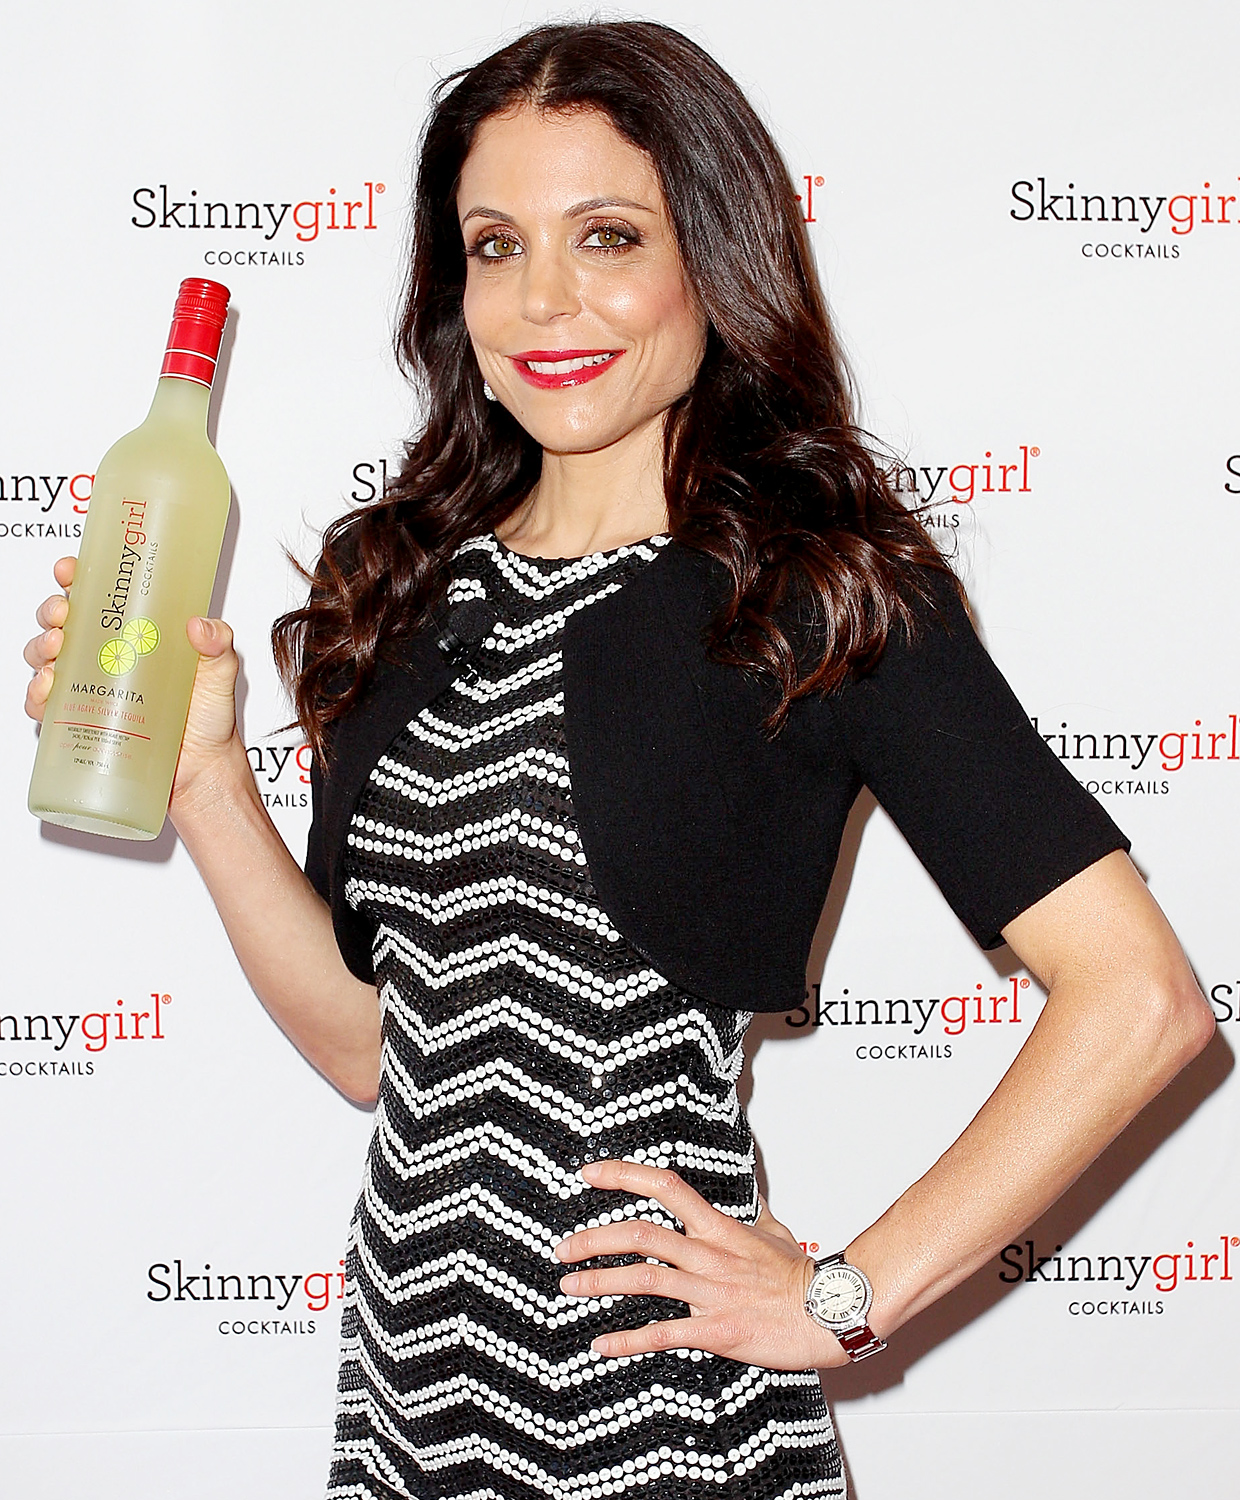 Skinny Girl to the top! The Apprentice alum created the Skinnygirl cocktail company in 2011, following her successful Skinnygirl books, which were released in 2009.